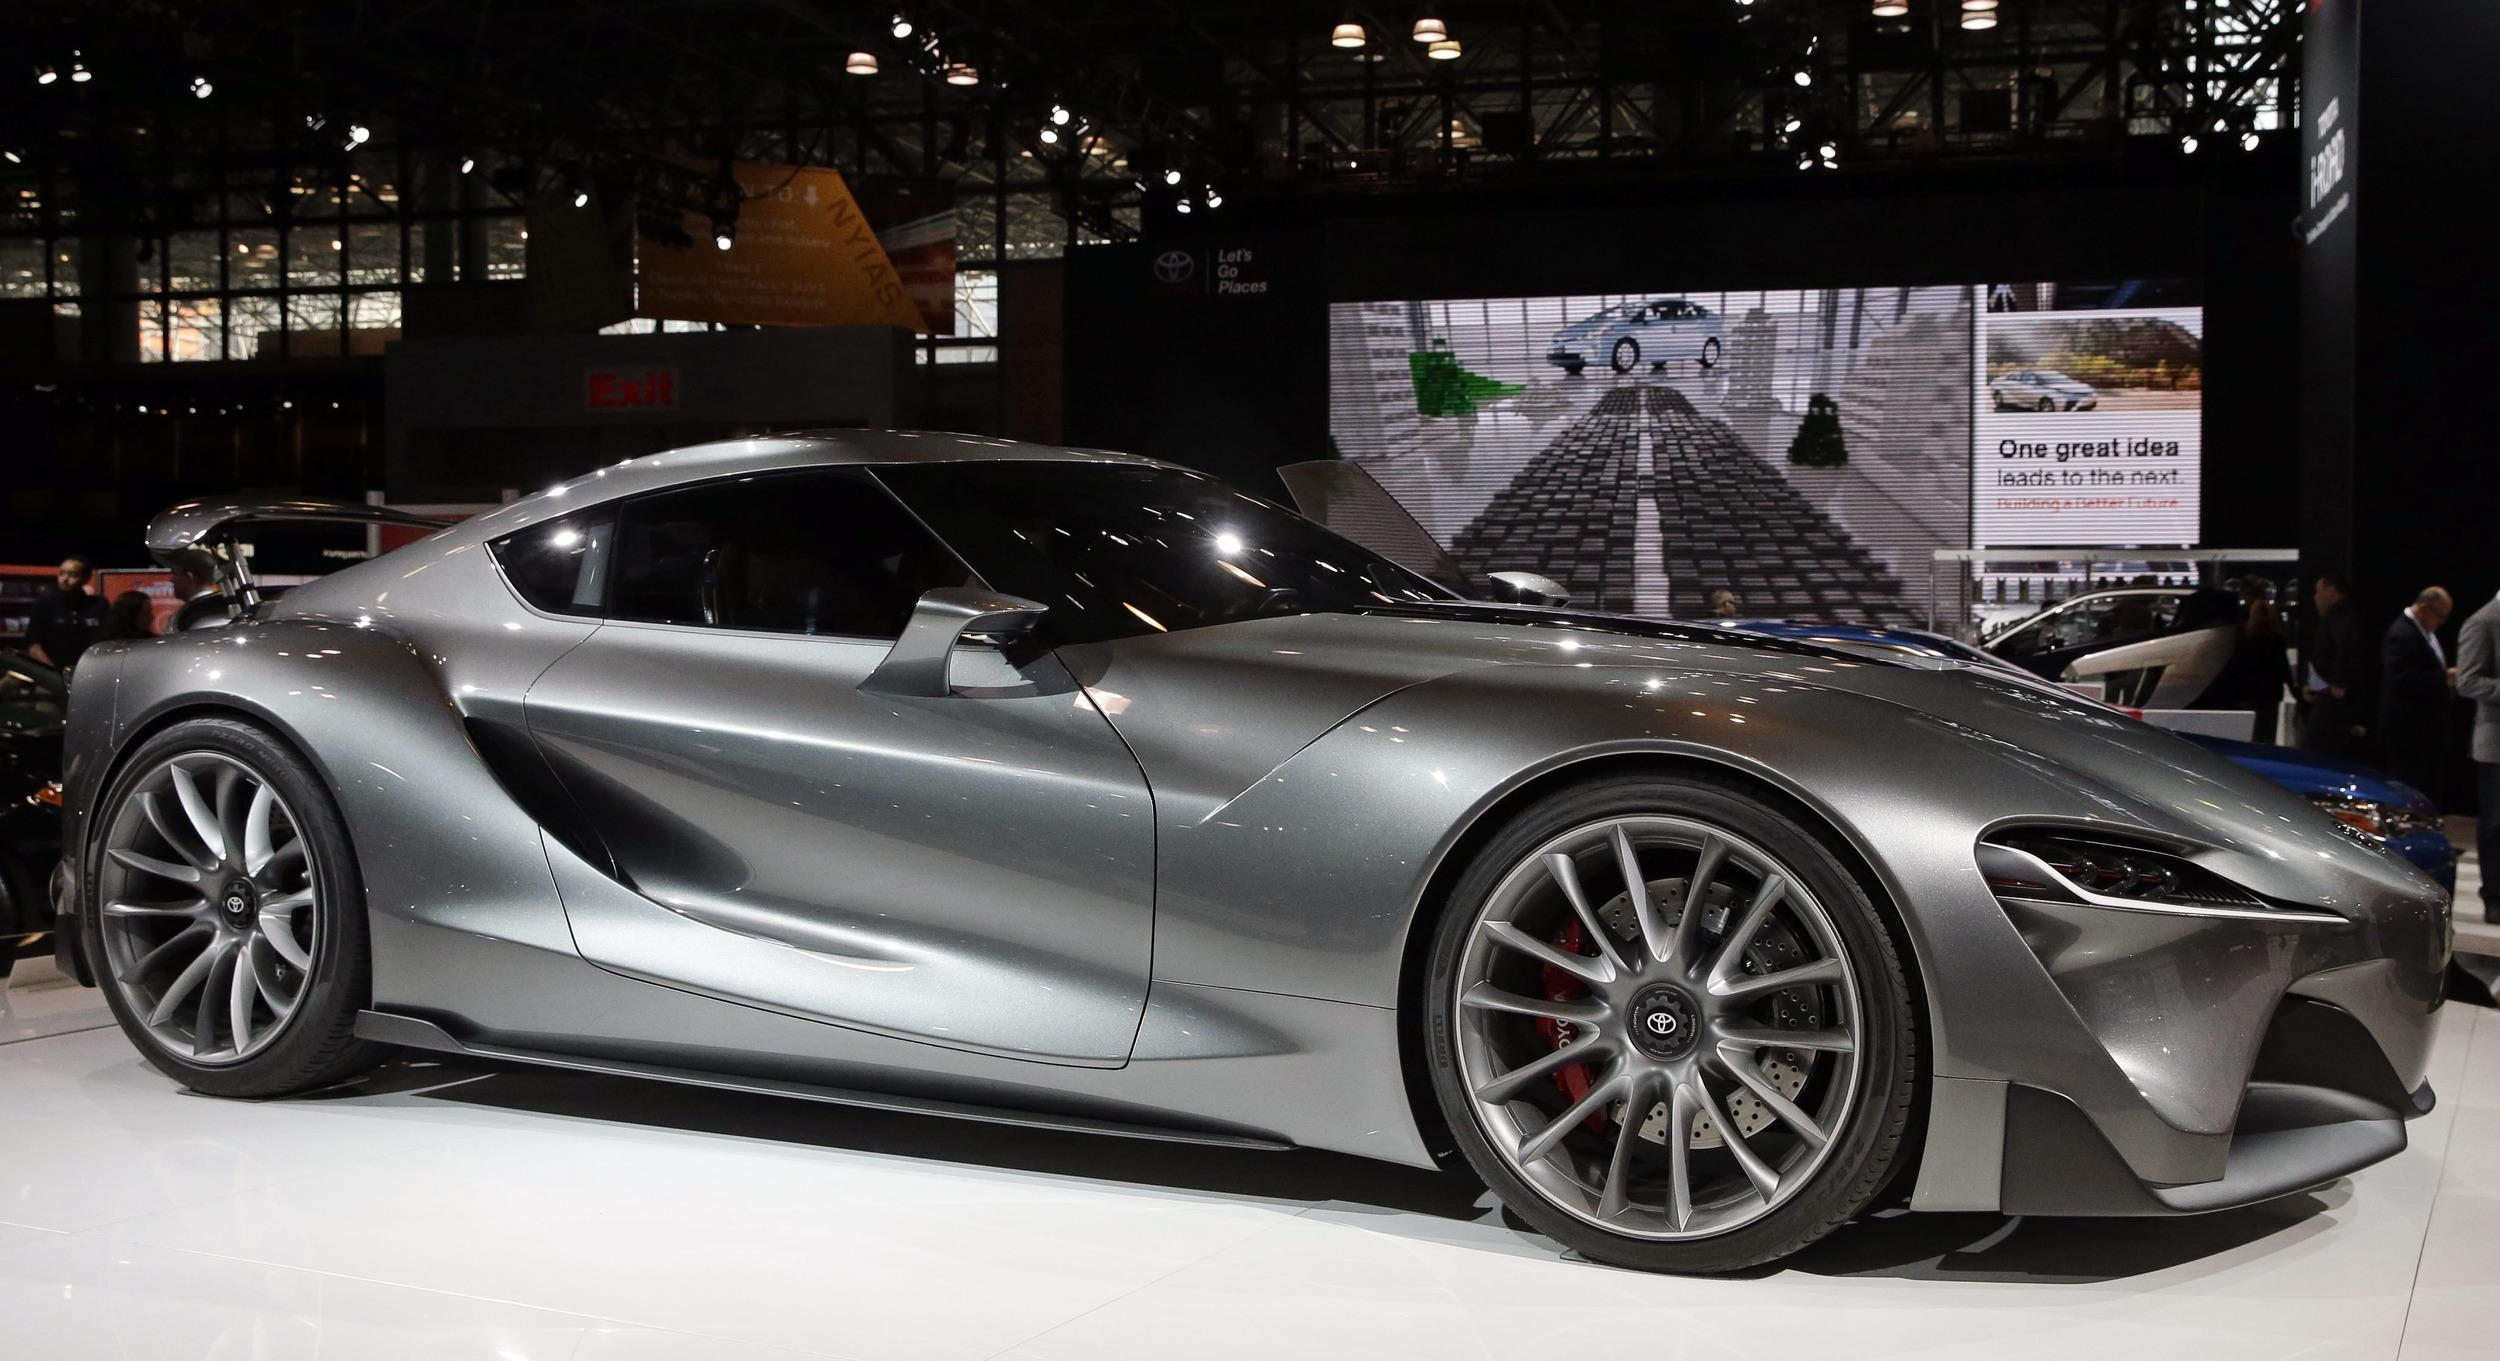 Automakers Flood The Zone With New Models At NY Auto Show - When is the car show